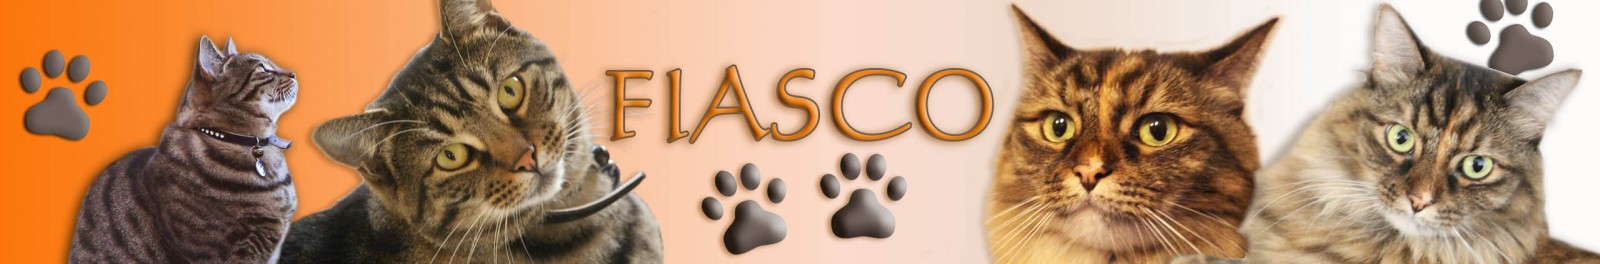 Fiasco Banner 2014 cropped